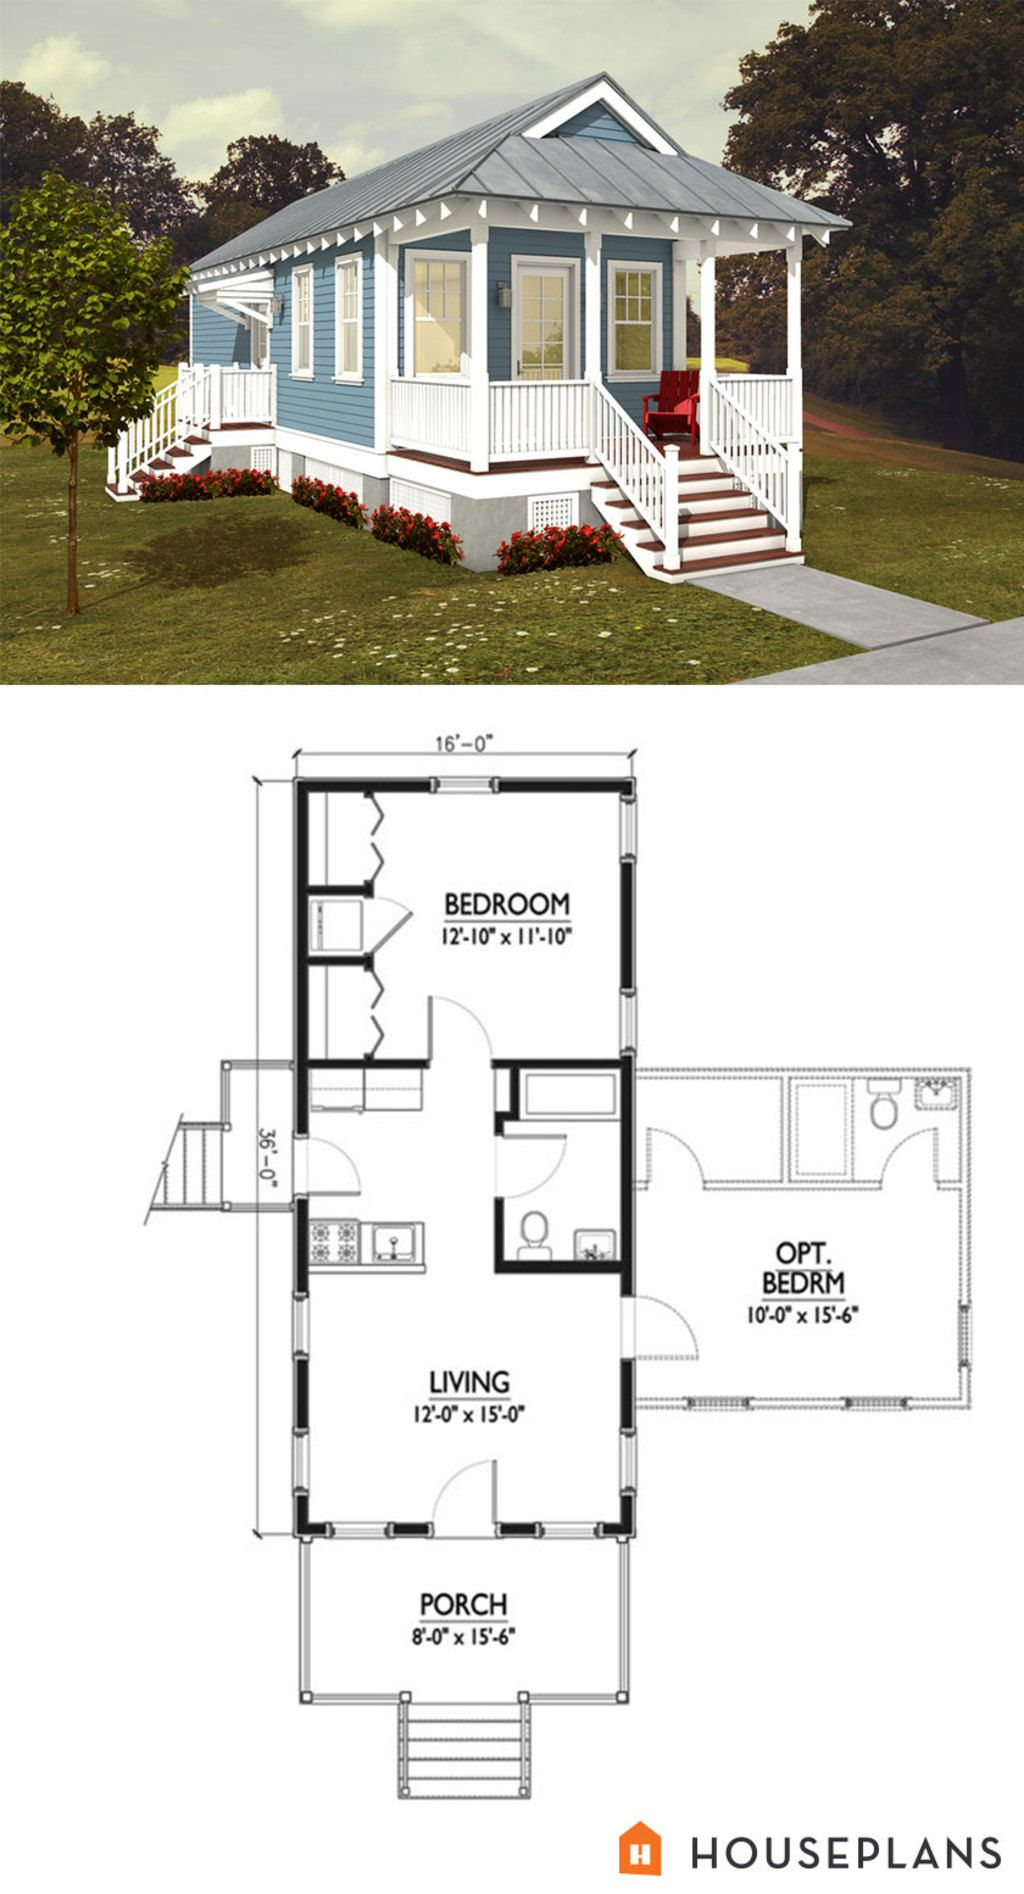 Cottage Style House Plan 1 Beds 1 Baths 576 Sq Ft Plan 514 6 Cottage Style House Plans Cottage House Plans Tiny House Floor Plans